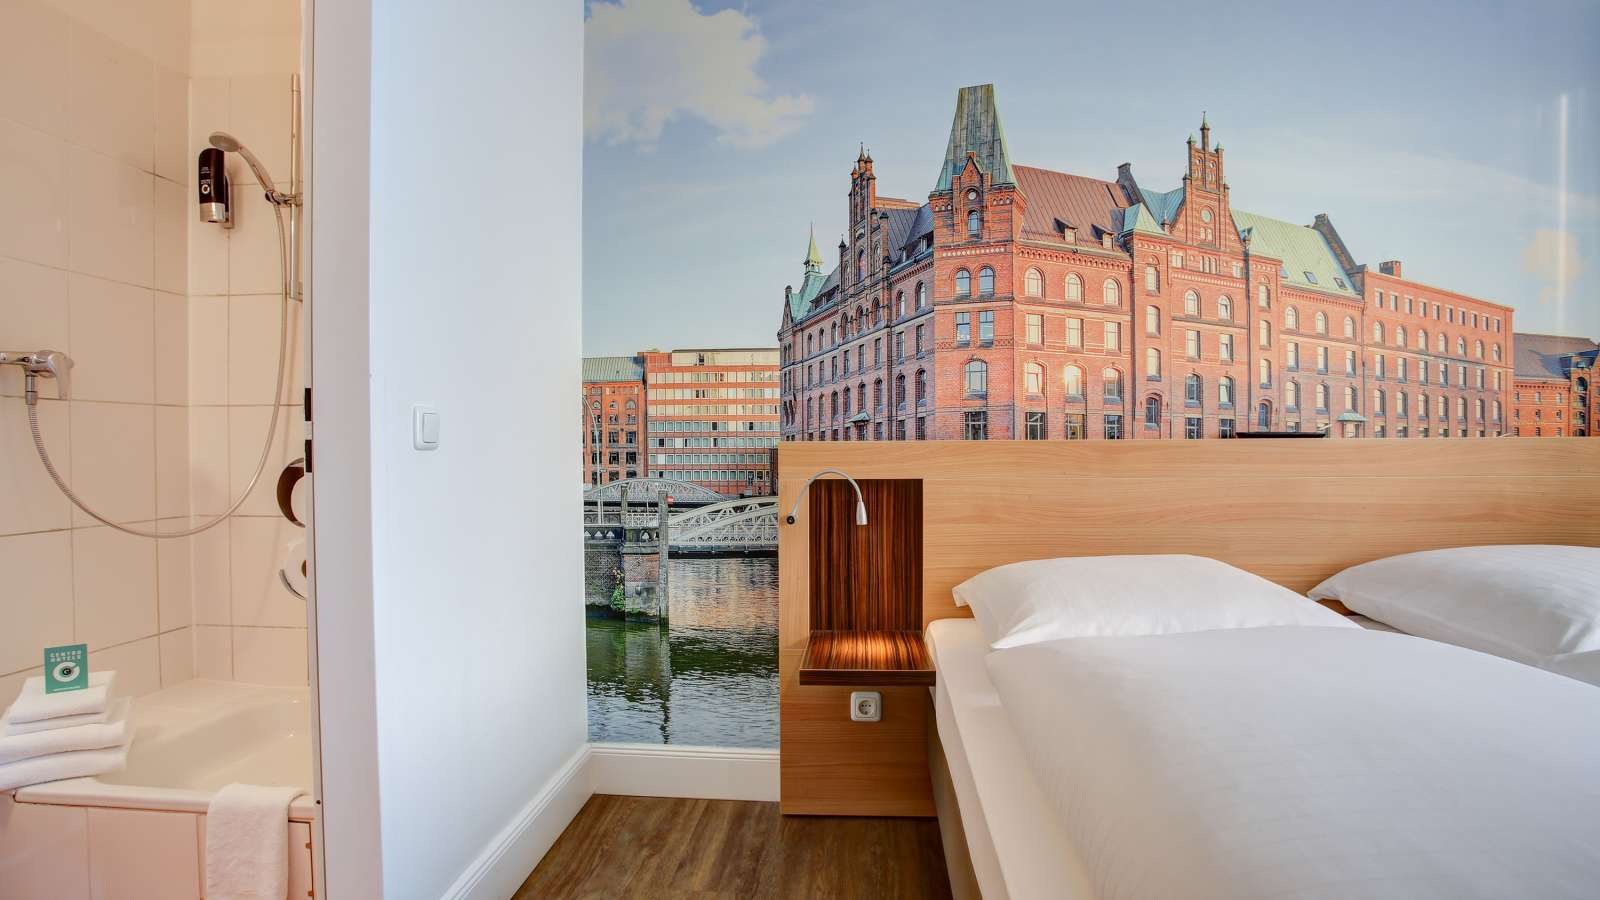 A double room at Centro Hotel Keese in Hamburg